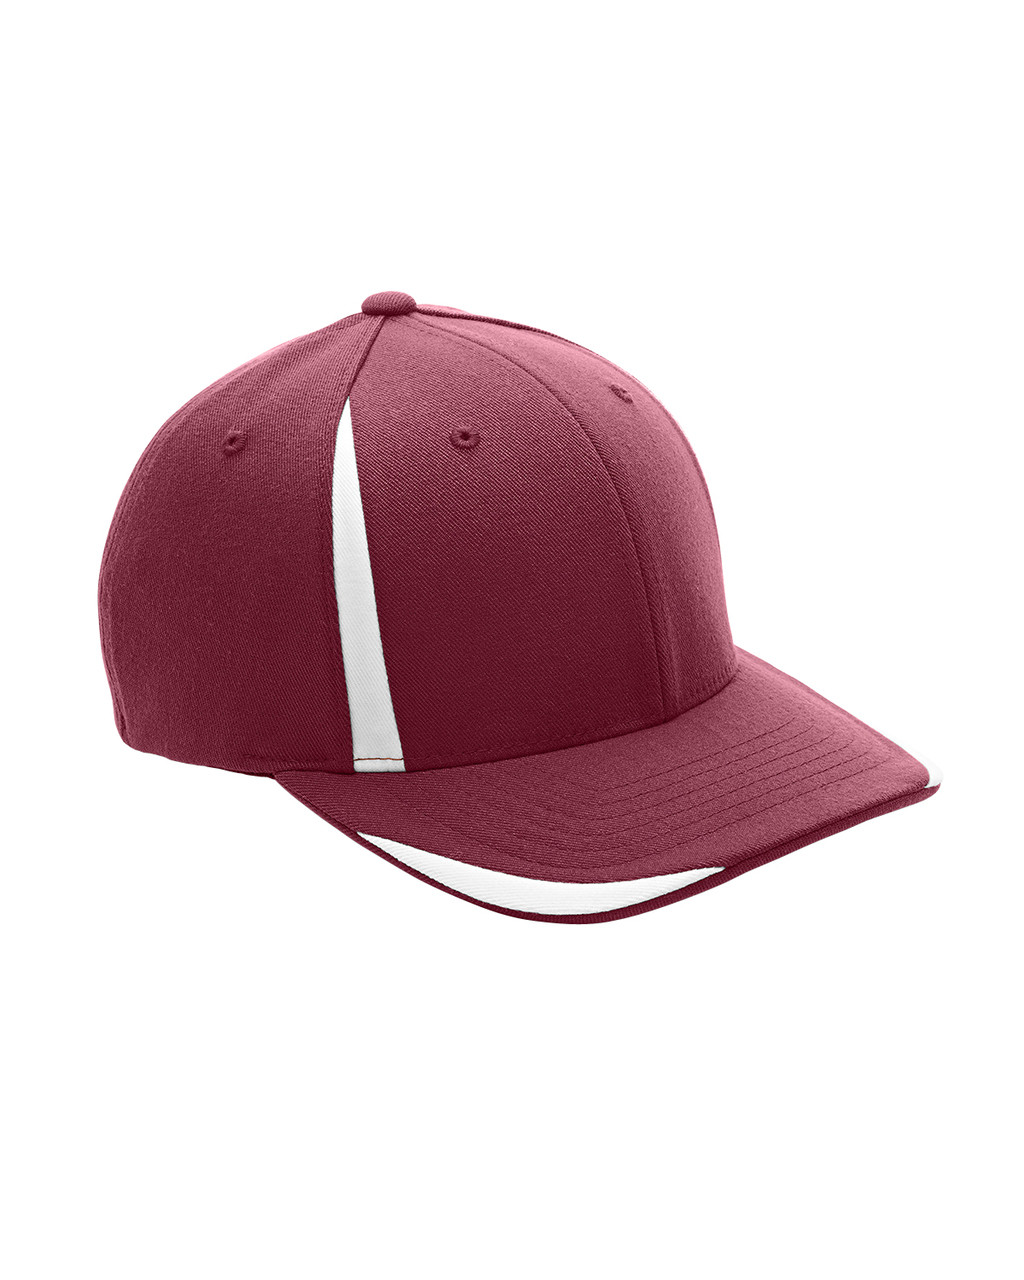 Maroon/White - ATB102 Flexfit for Team 365 Pro-Formance Front Sweep Cap